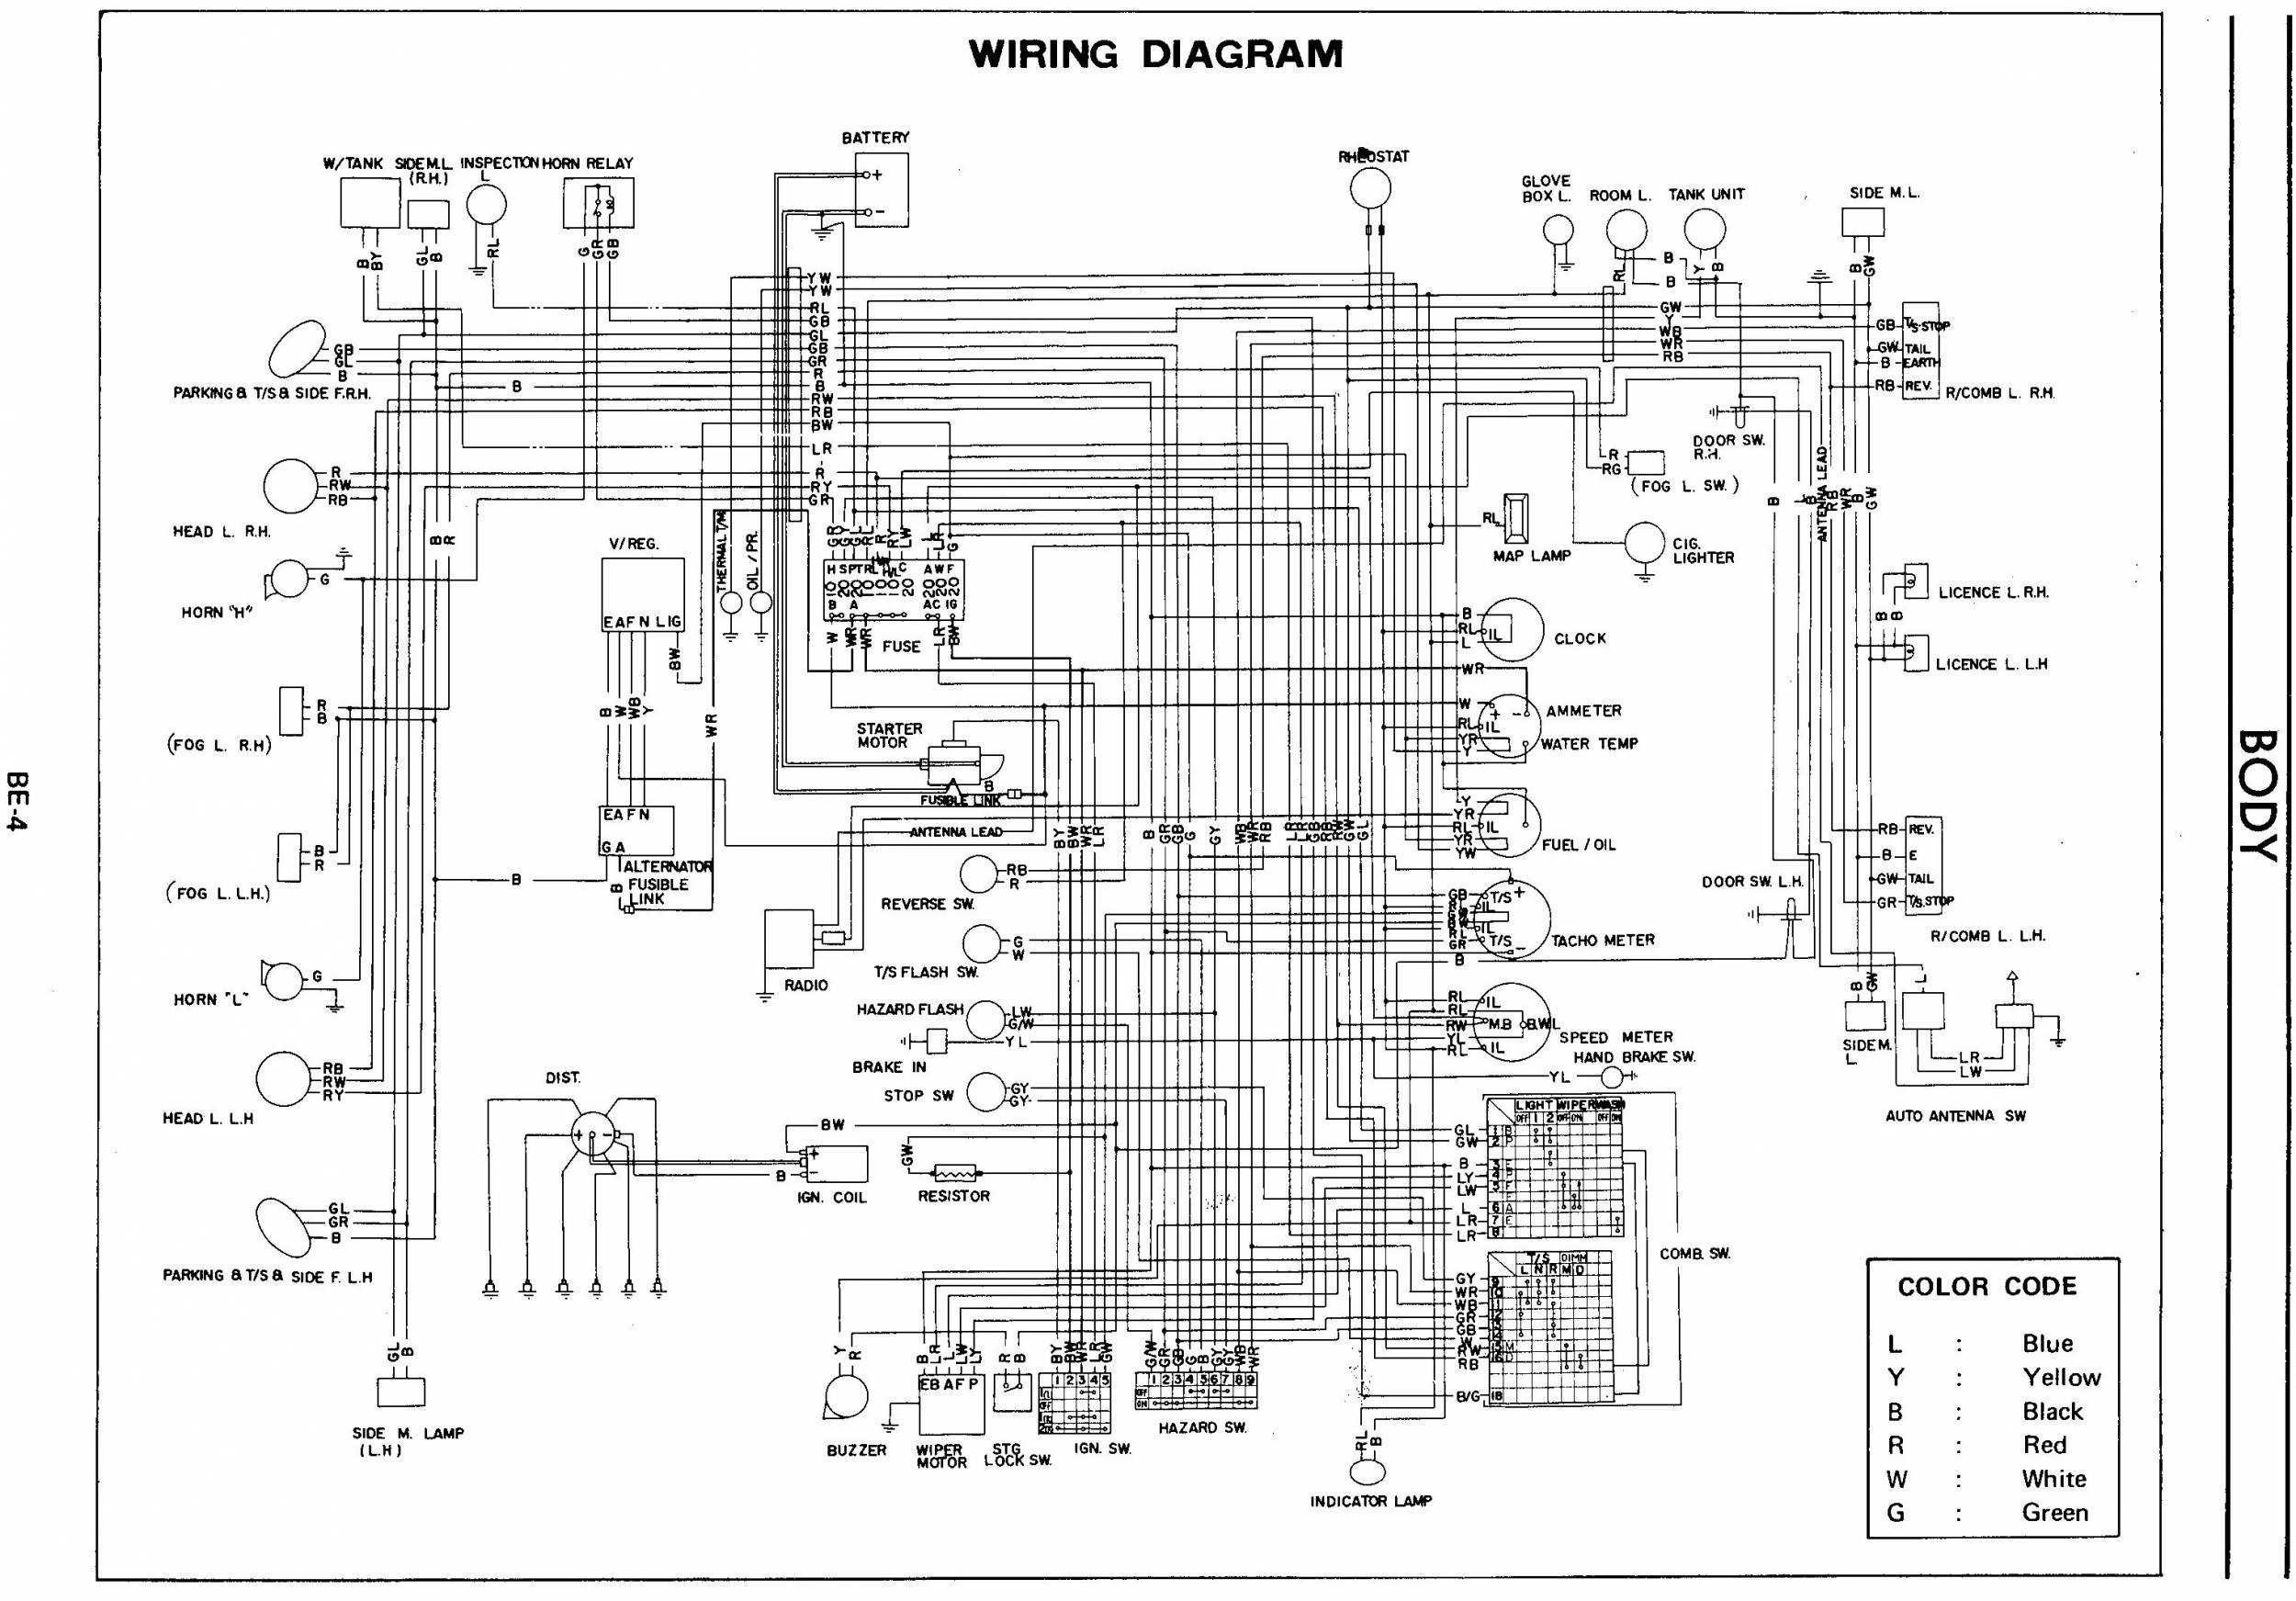 Mercedes Benz Engine Diagram Mercedes Benz Wiring Diagram Altermator Data Wiring Diagrams • Of Mercedes Benz Engine Diagram Wiring Diagram Auto Alarm Best Best Mercedes Benz Wiring Diagrams